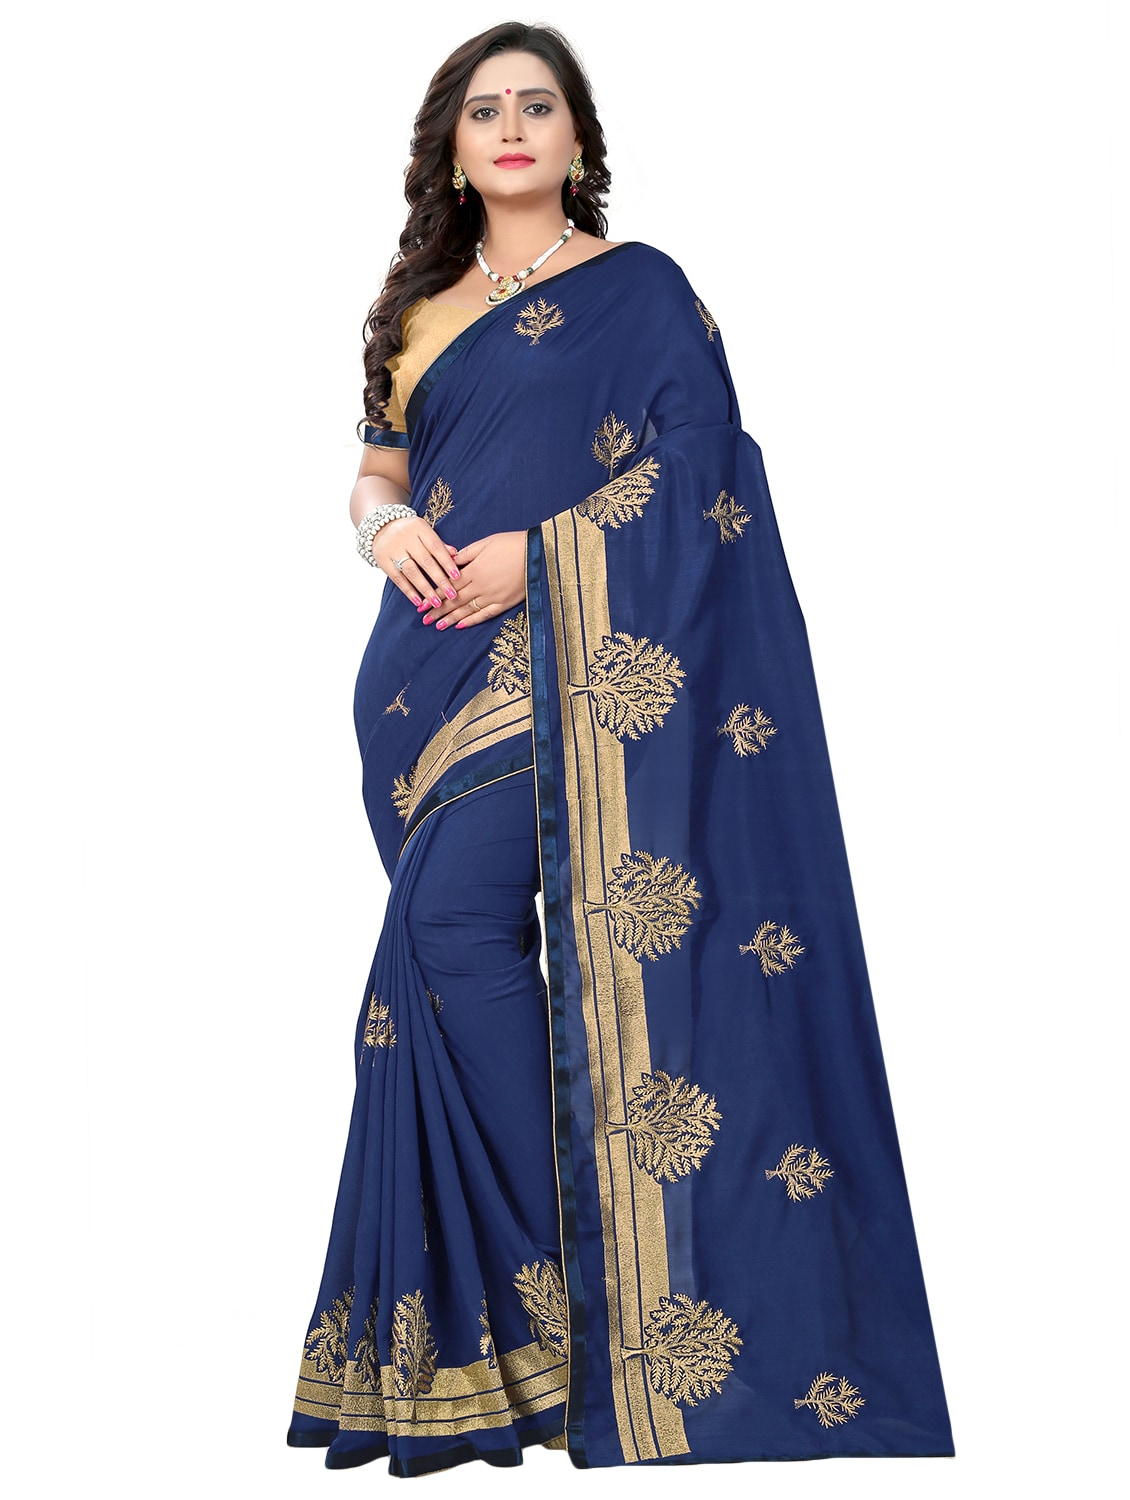 ea65e63e4adbe2 Buy Zari Embroidered Saree With Blouse for Women from Riva for ₹1545 at 68%  off | 2019 Limeroad.com